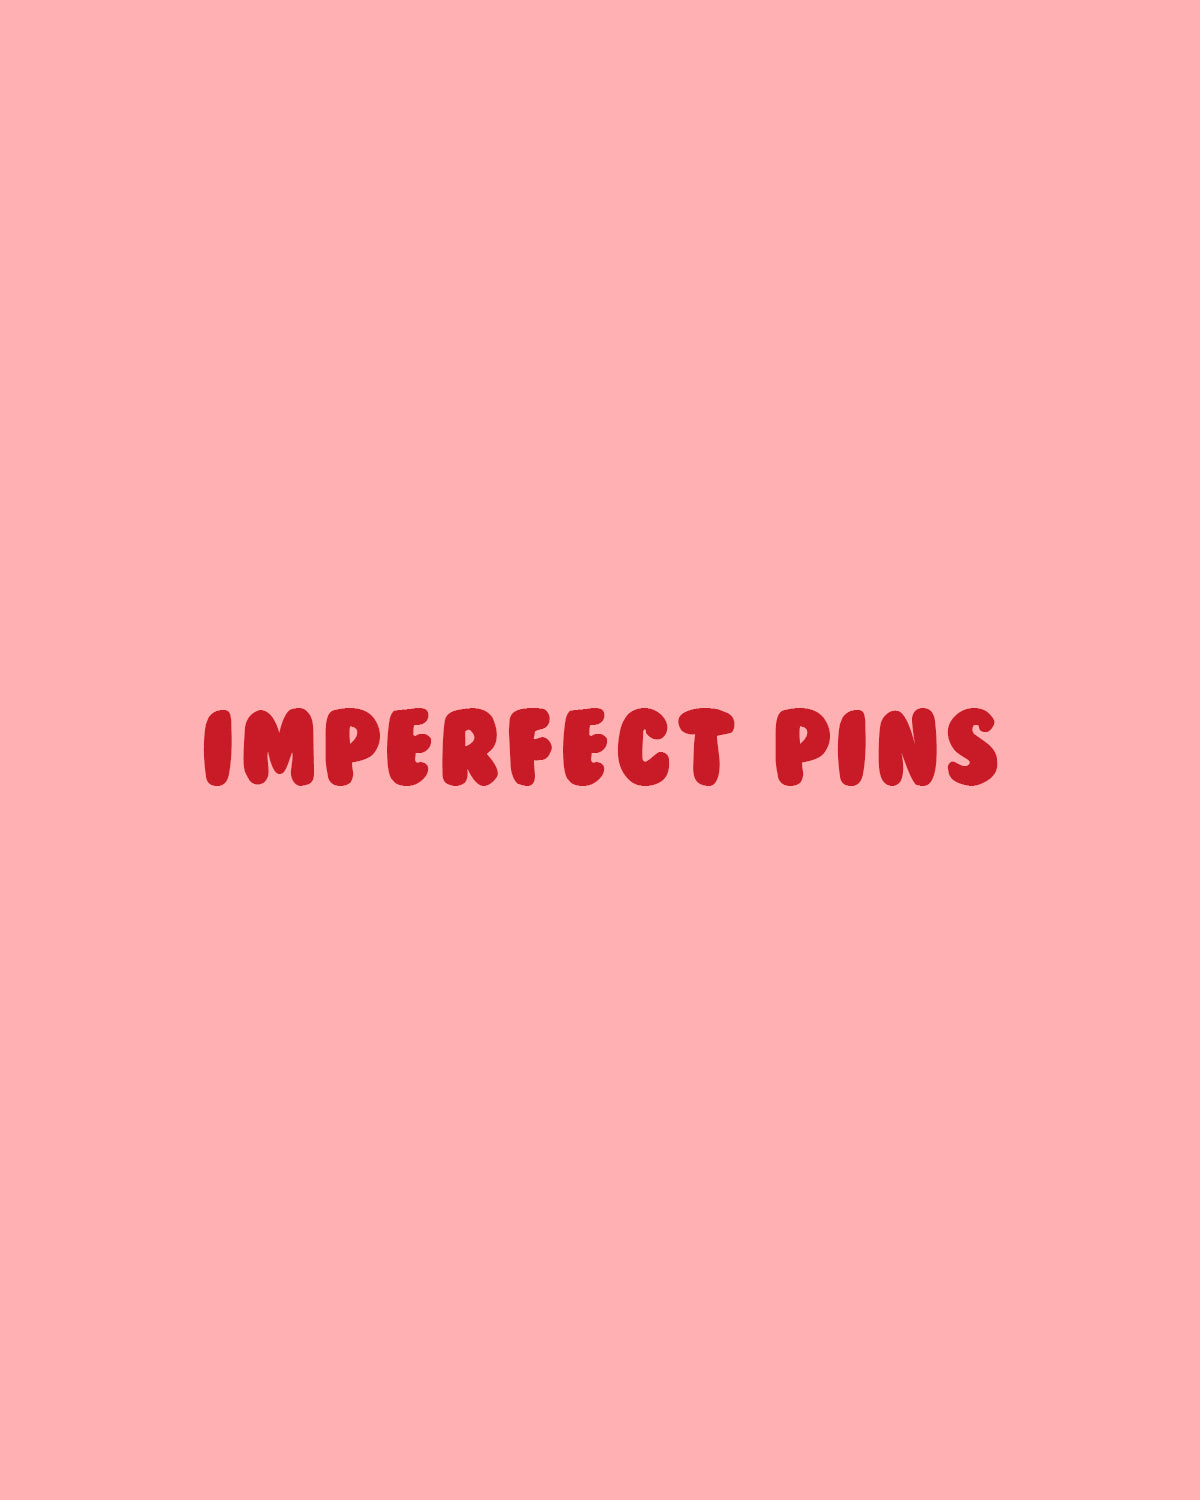 Imperfect Pins